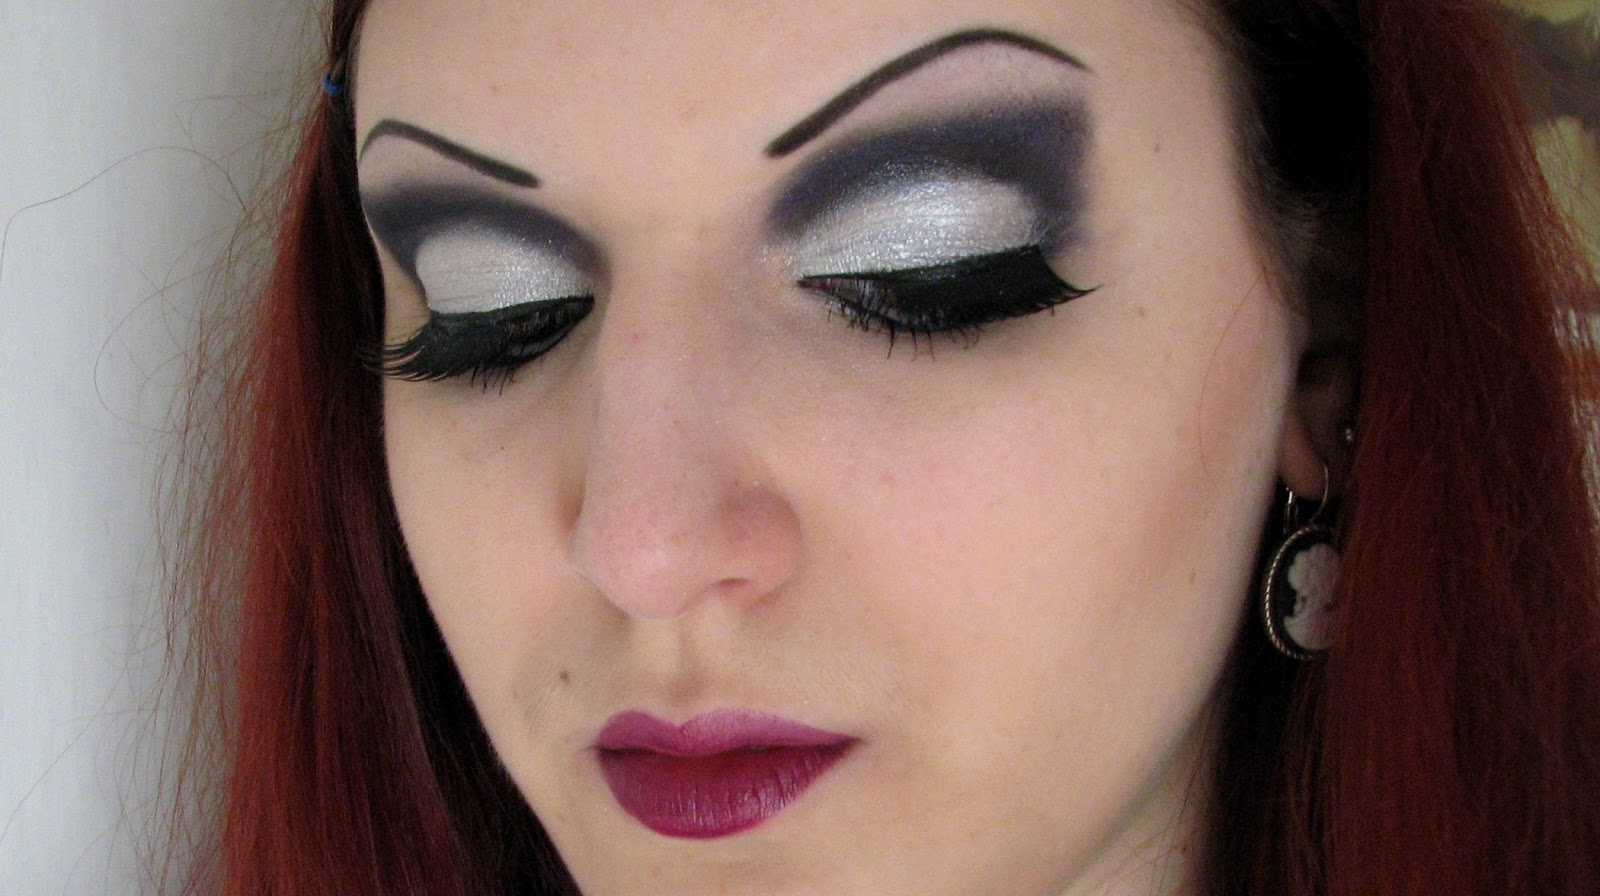 Lena Lednicka New Yearu0026#39;s Eve Party Makeup [TUTORIAL]